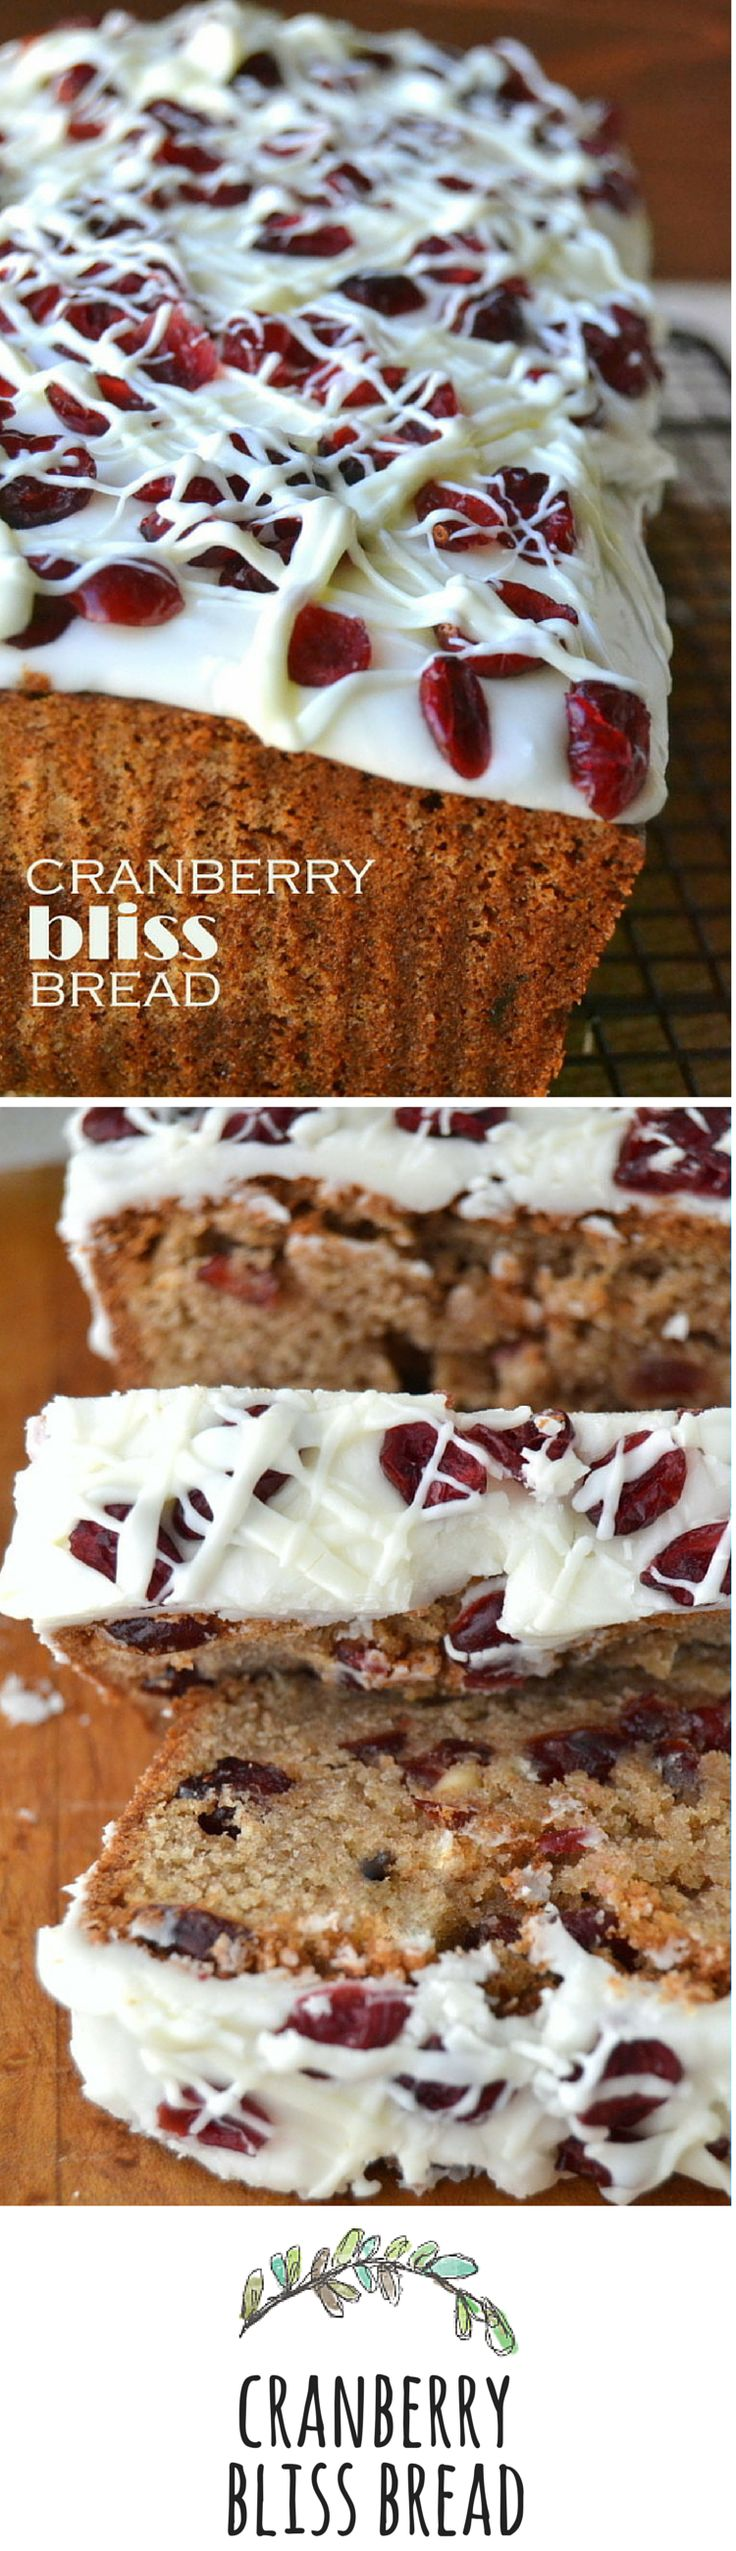 Skip the trip to the coffee shop, this homemade version of cranberry bliss is better than anything you'll find there!